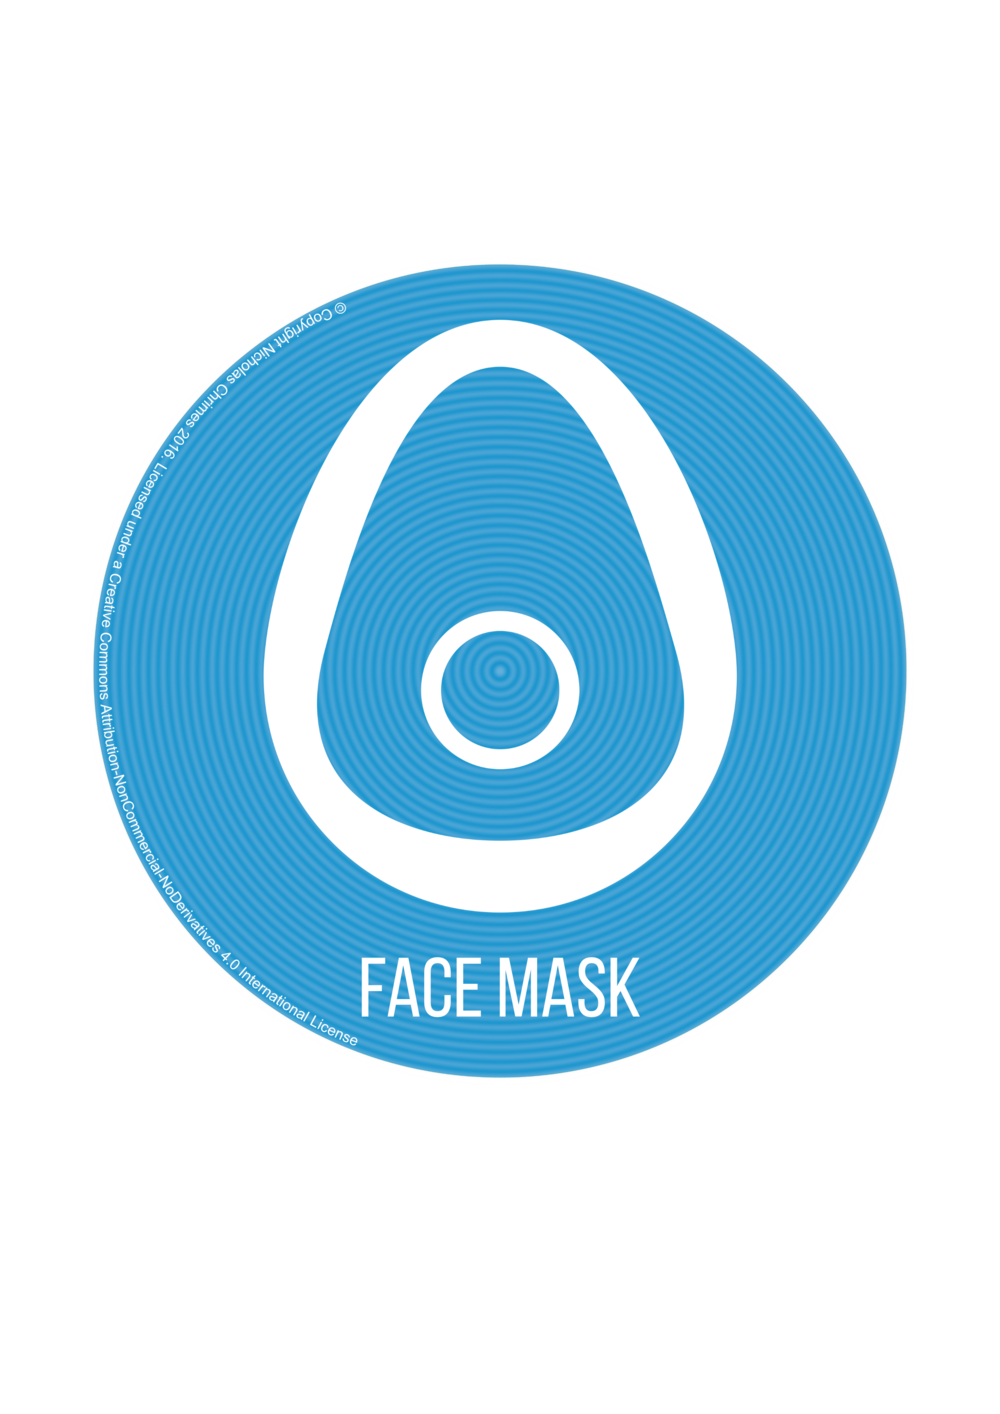 Face Mask Icon - with text (Right click to download)